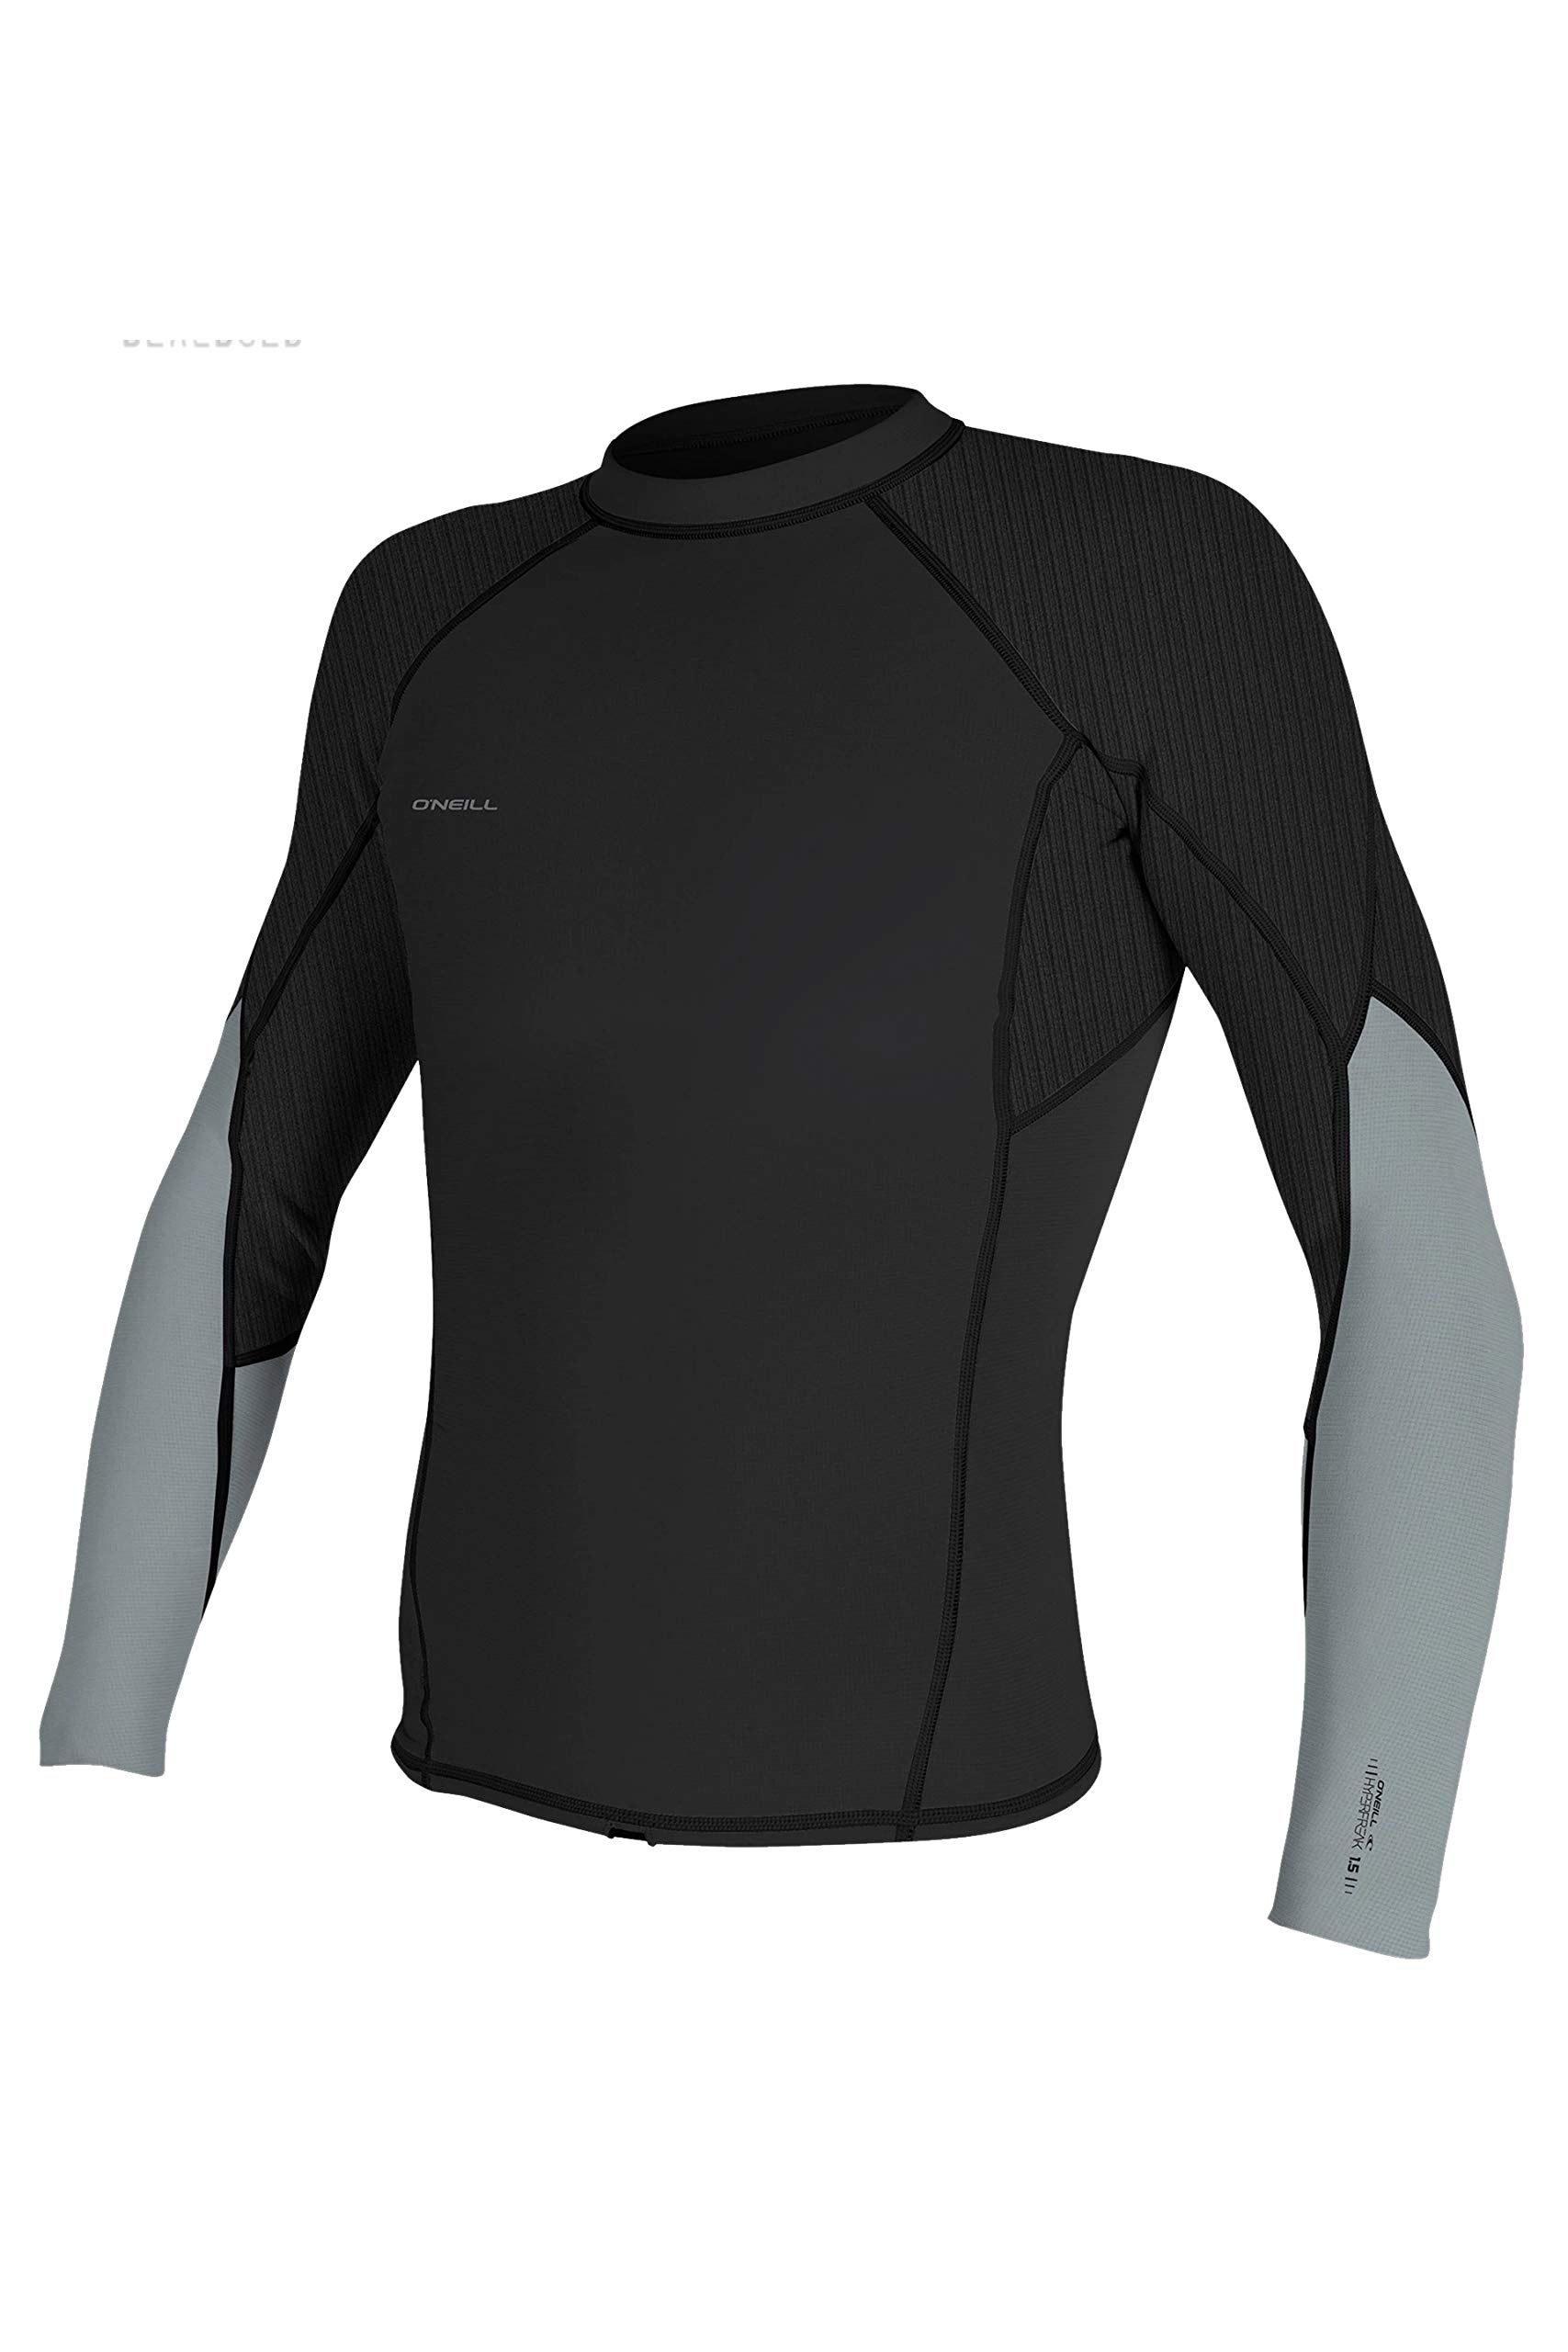 O'Neill Men's Hyperfreak 1.5mm Long Sleeve Top, Midnight Oil/Cool Grey, Small by O'Neill Wetsuits